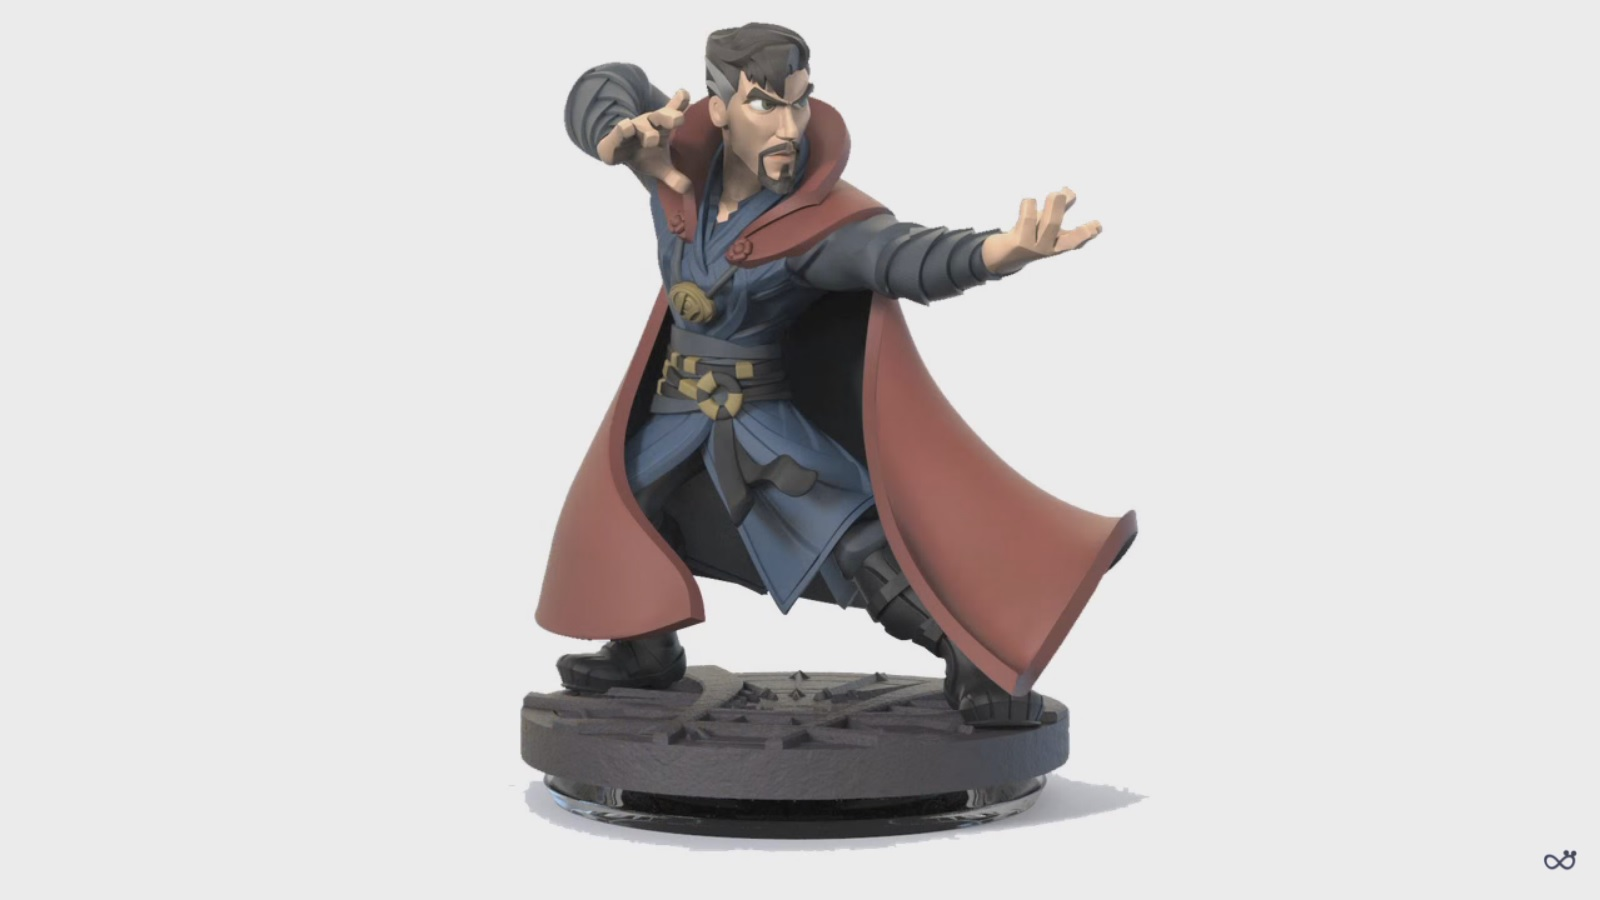 infinity 3 0 characters. disney infinity 3.0 \u2013 a look at the dr. strange figure that never was 3 0 characters